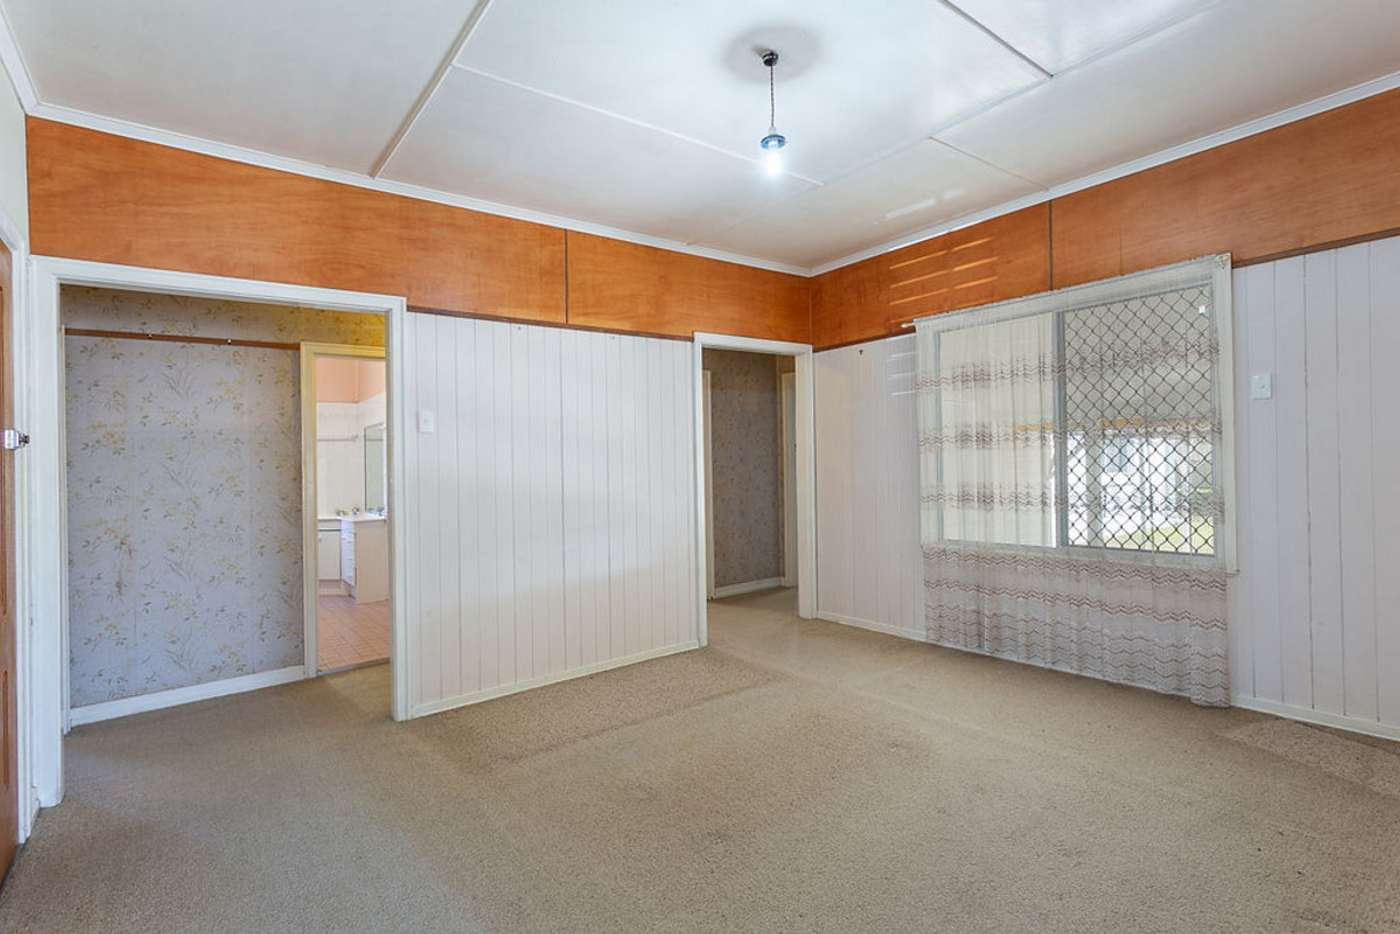 Seventh view of Homely house listing, 89 Stafford Street, Silkstone QLD 4304